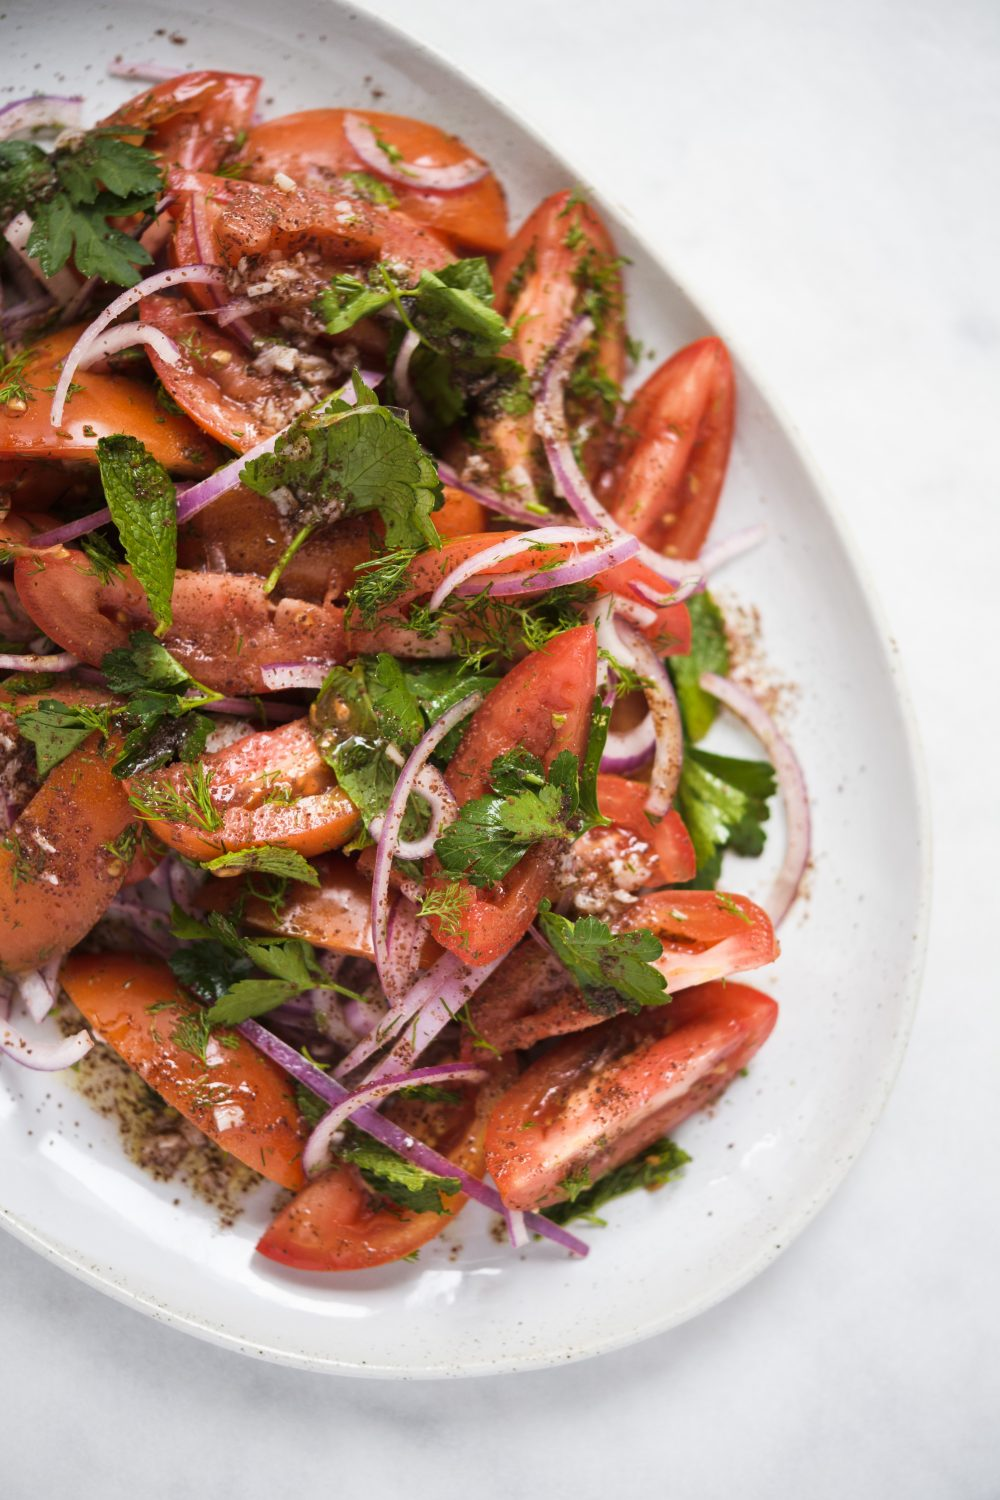 Tomato-Herb Salad with Sumac